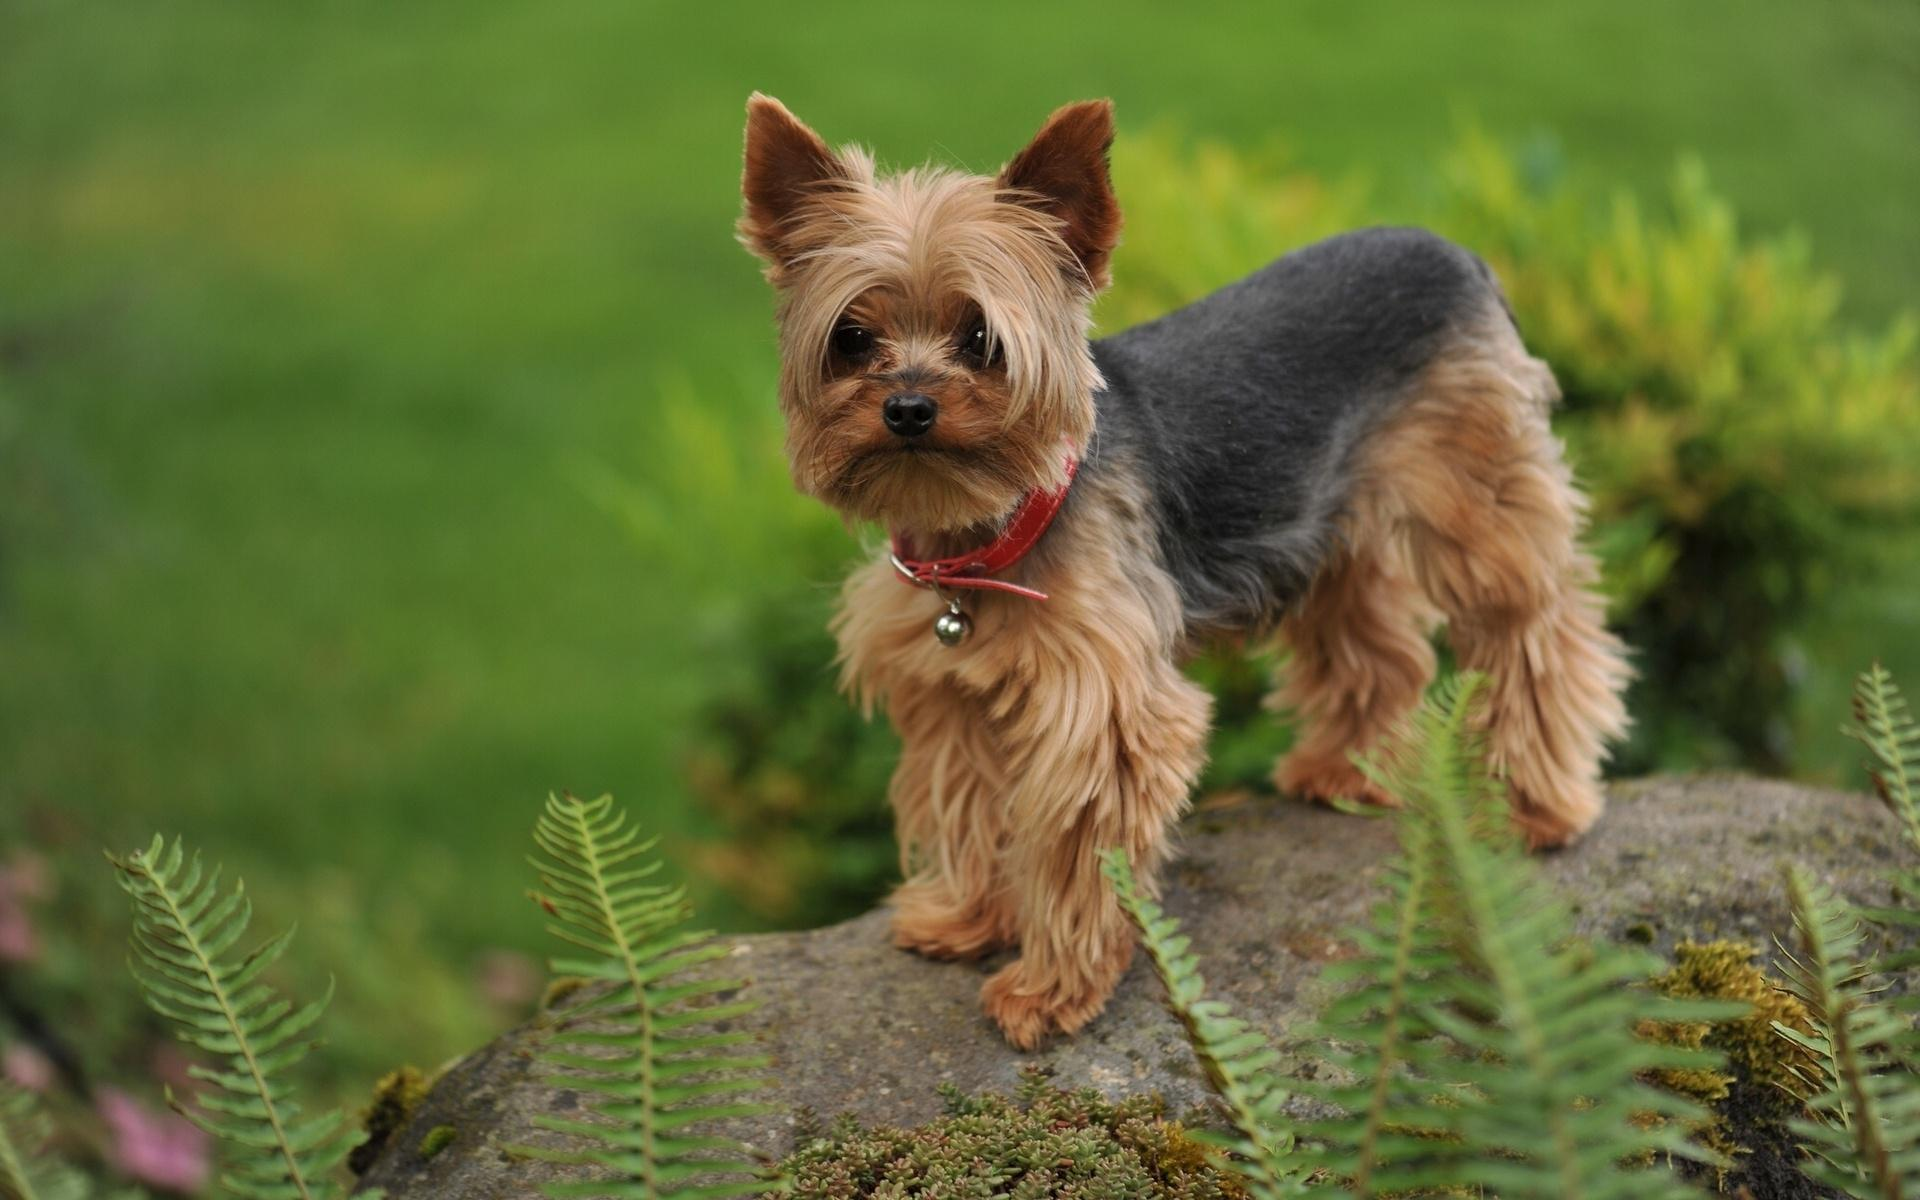 Yorkshire terrier HQ Wallpaper